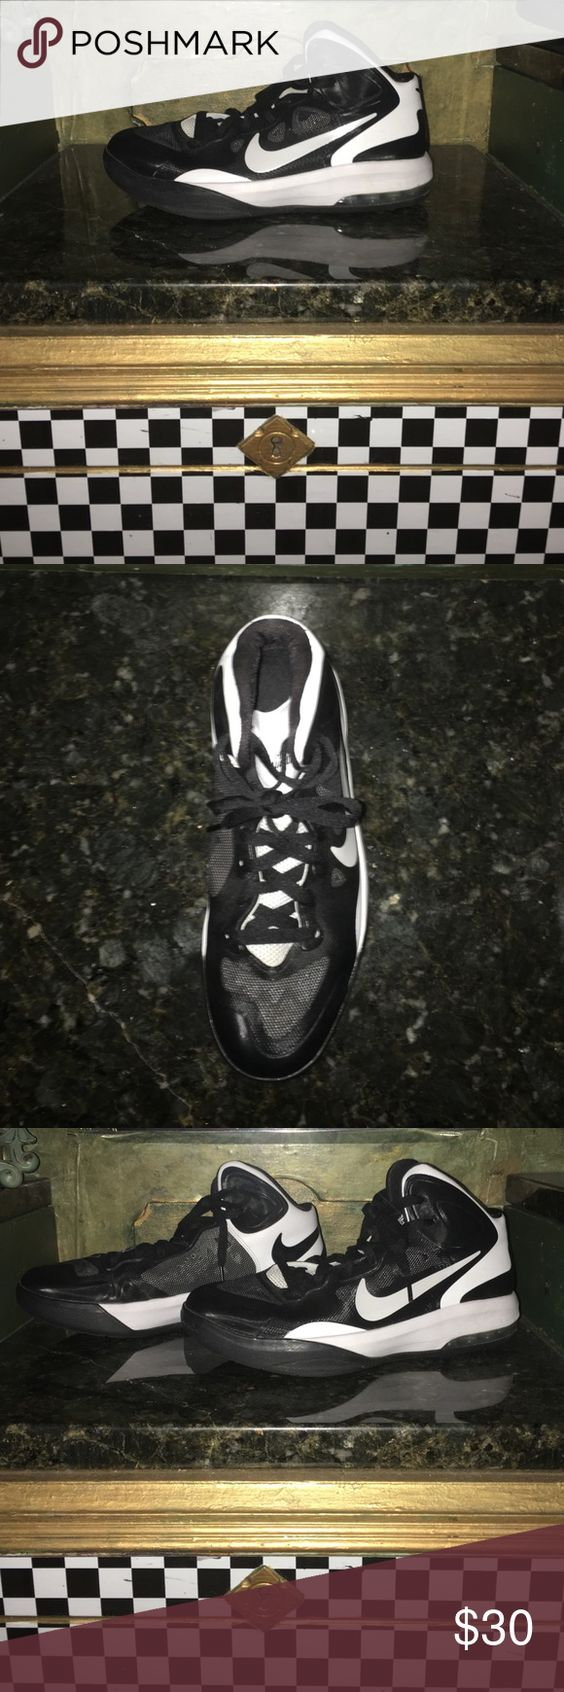 Nike Women's Basketball Sneakers Nike Women's Basketball sneakers never been worn perfect for high school or college women basketball players! Hyper Guard Up edition Nike Shoes Athletic Shoes